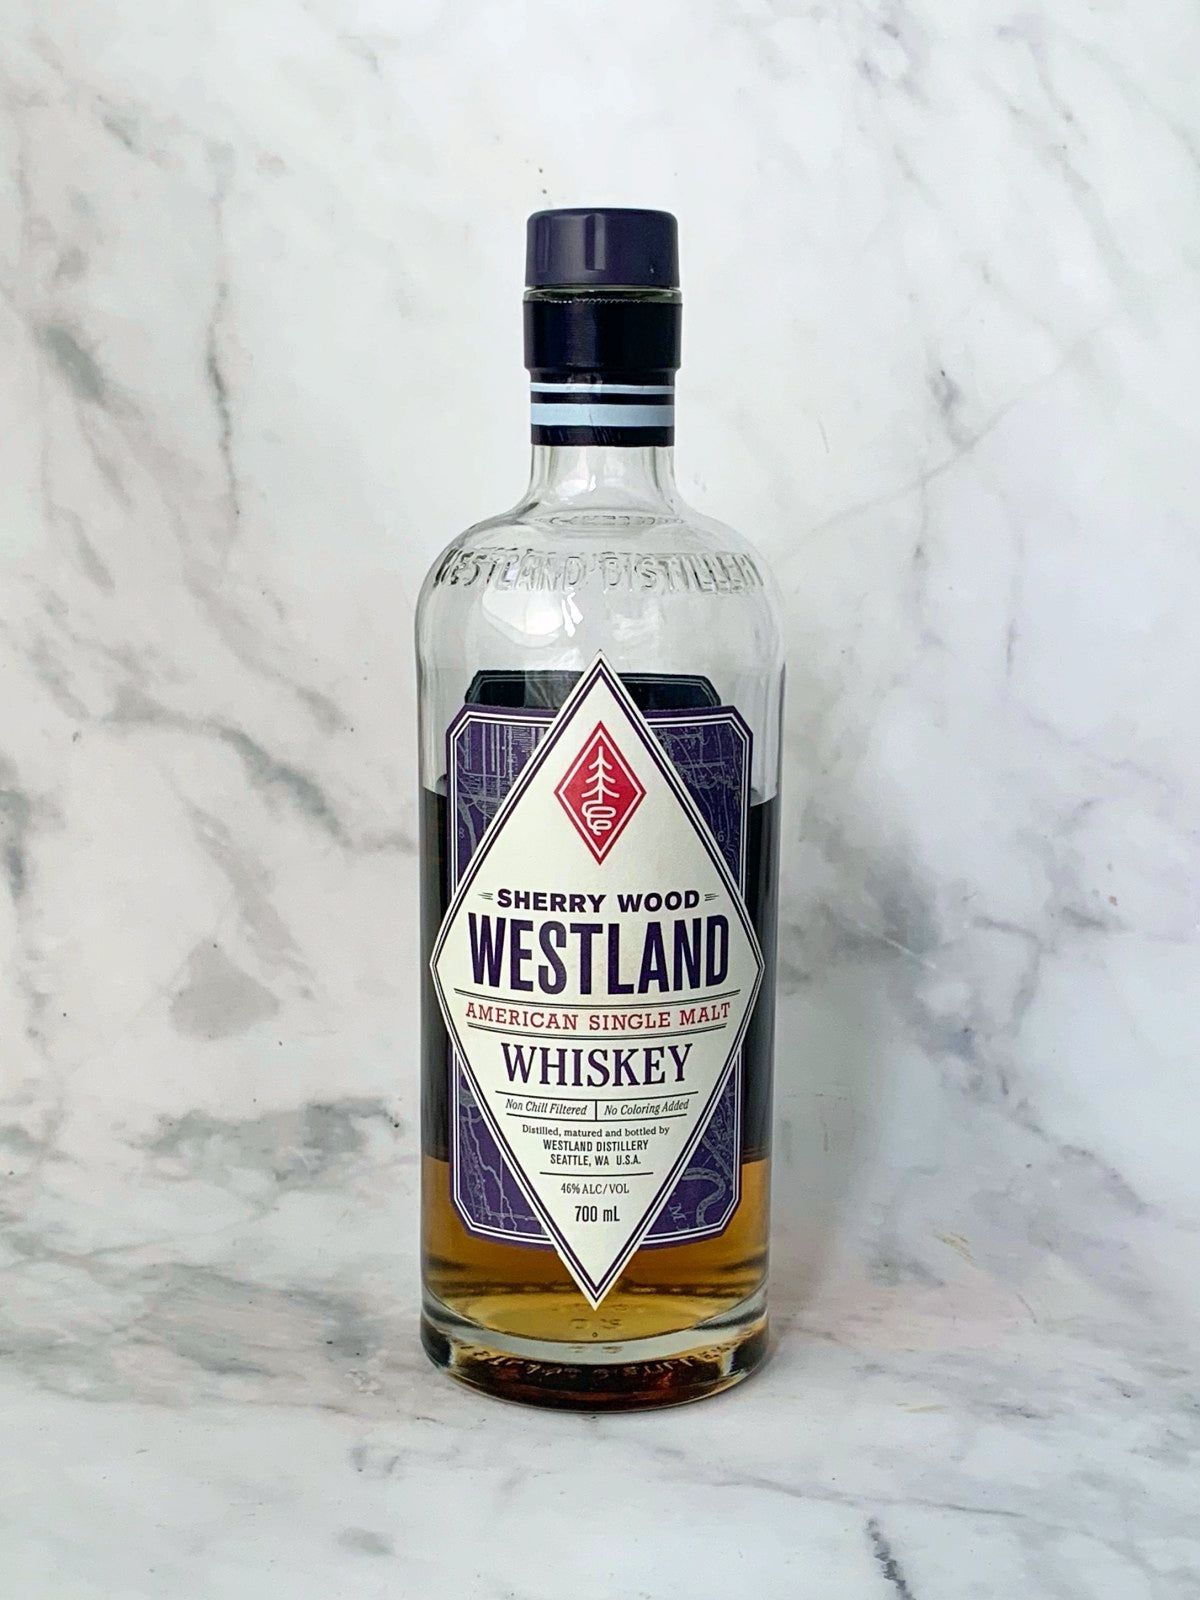 Westland Sherry Wood American Single Malt Whiskey (50ml serve)